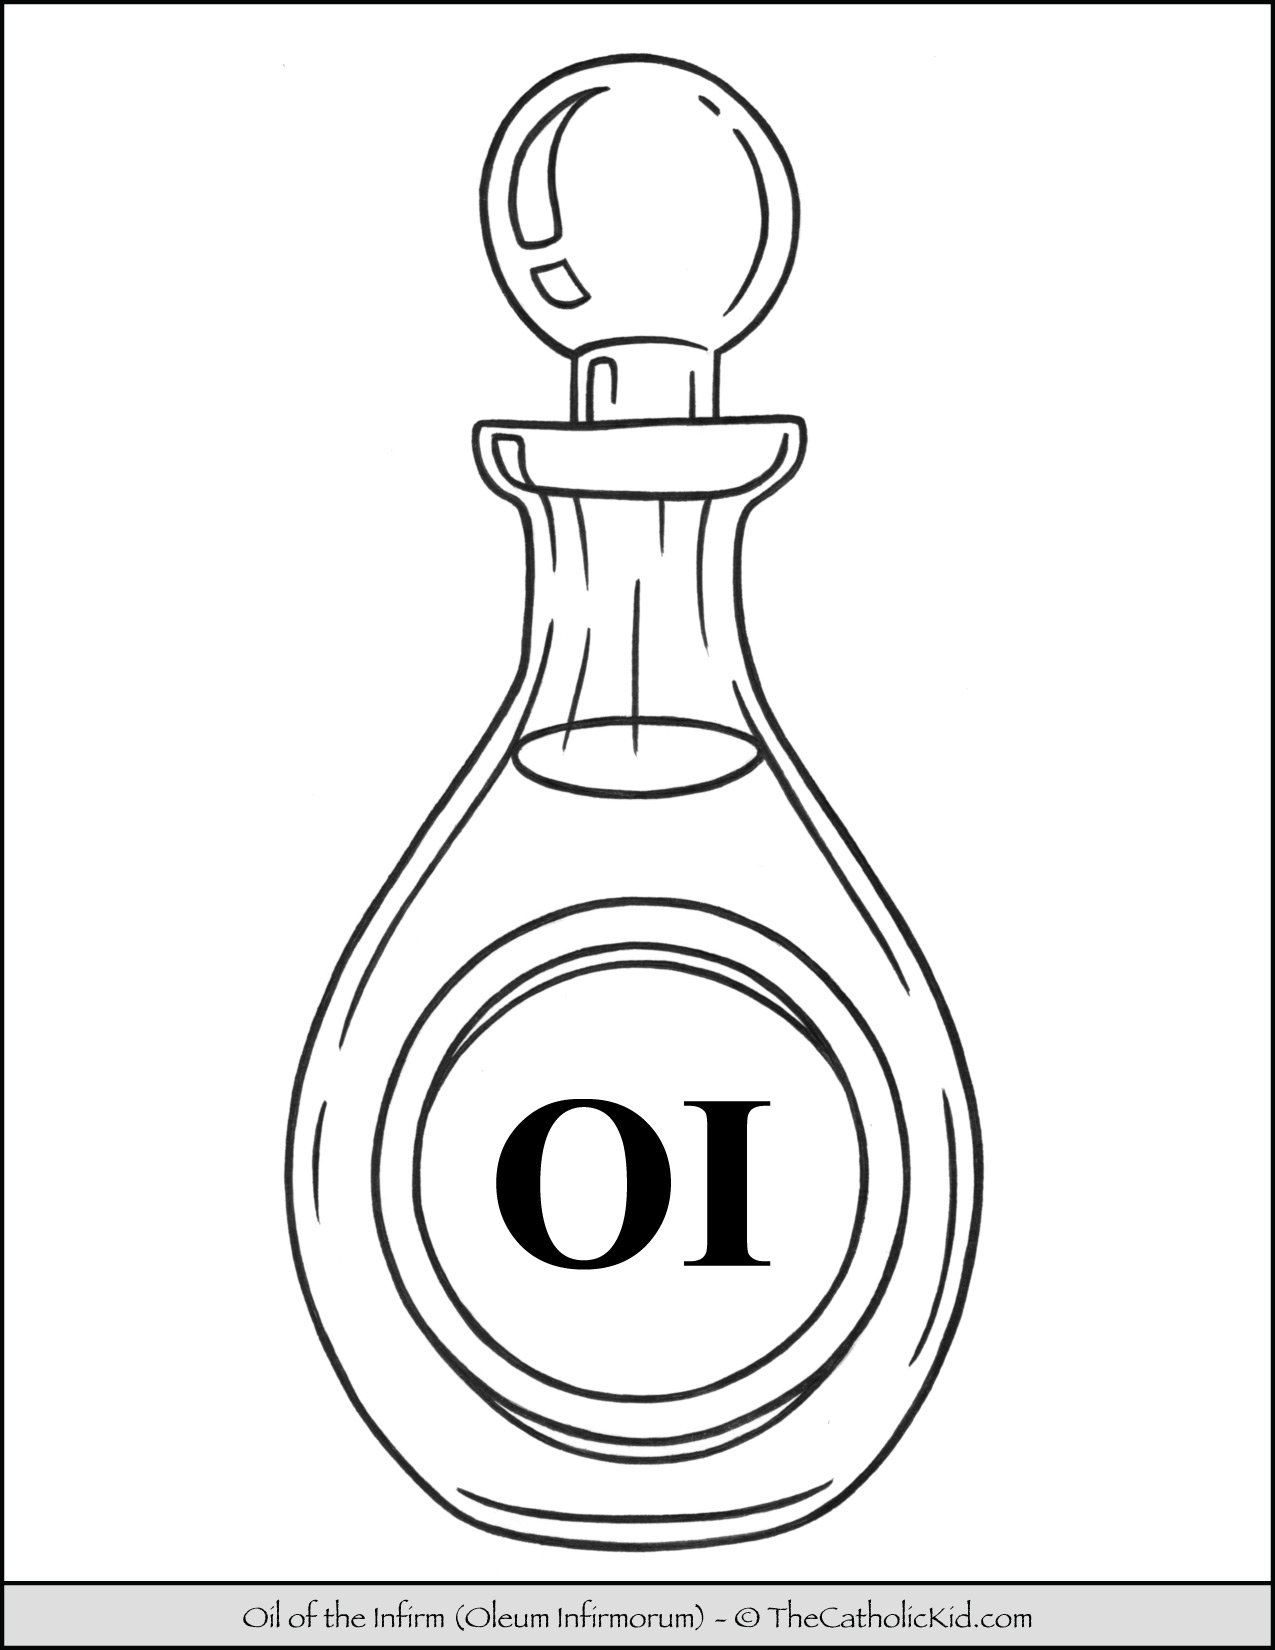 Oil of the Infirm Coloring Page